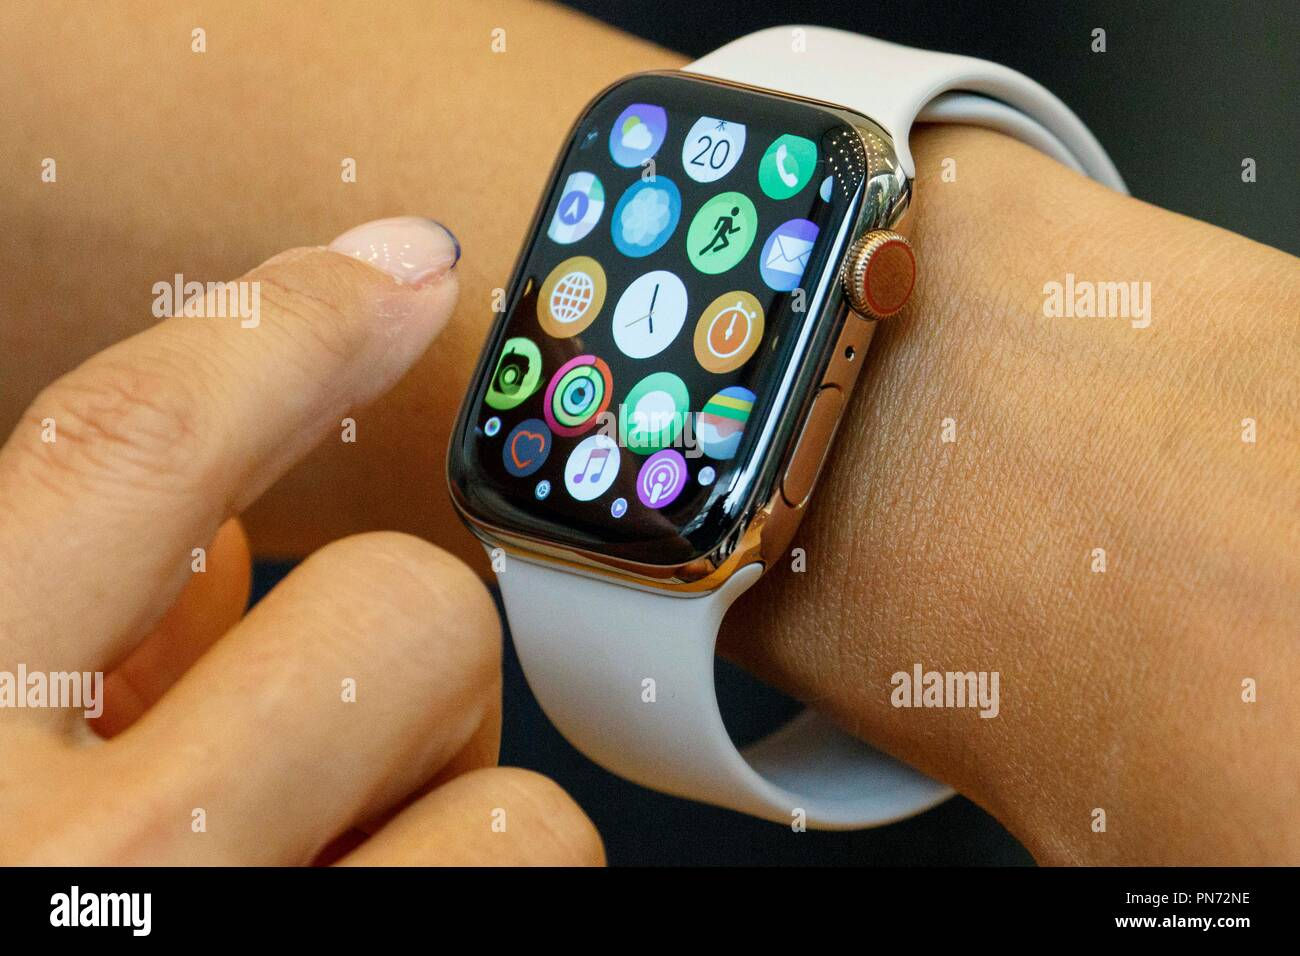 A woman tests a new iWatch (Series 4) at the Apple Store in Omotesando on September 21, 2018, Tokyo, Japan. Apple fans lined up patiently in the early morning rain to get the new iPhone models (XS and XS Max) and the new iWatch (Series 4). The new iPhone XS costs JPY 112,800 for the 64 GB model, the iPhone XS Max costs JPY 124,800 JPY for the 64 GB model, and iWatch Series 4 costs JPY 45,800. Credit: Rodrigo Reyes Marin/AFLO/Alamy Live News Stock Photo